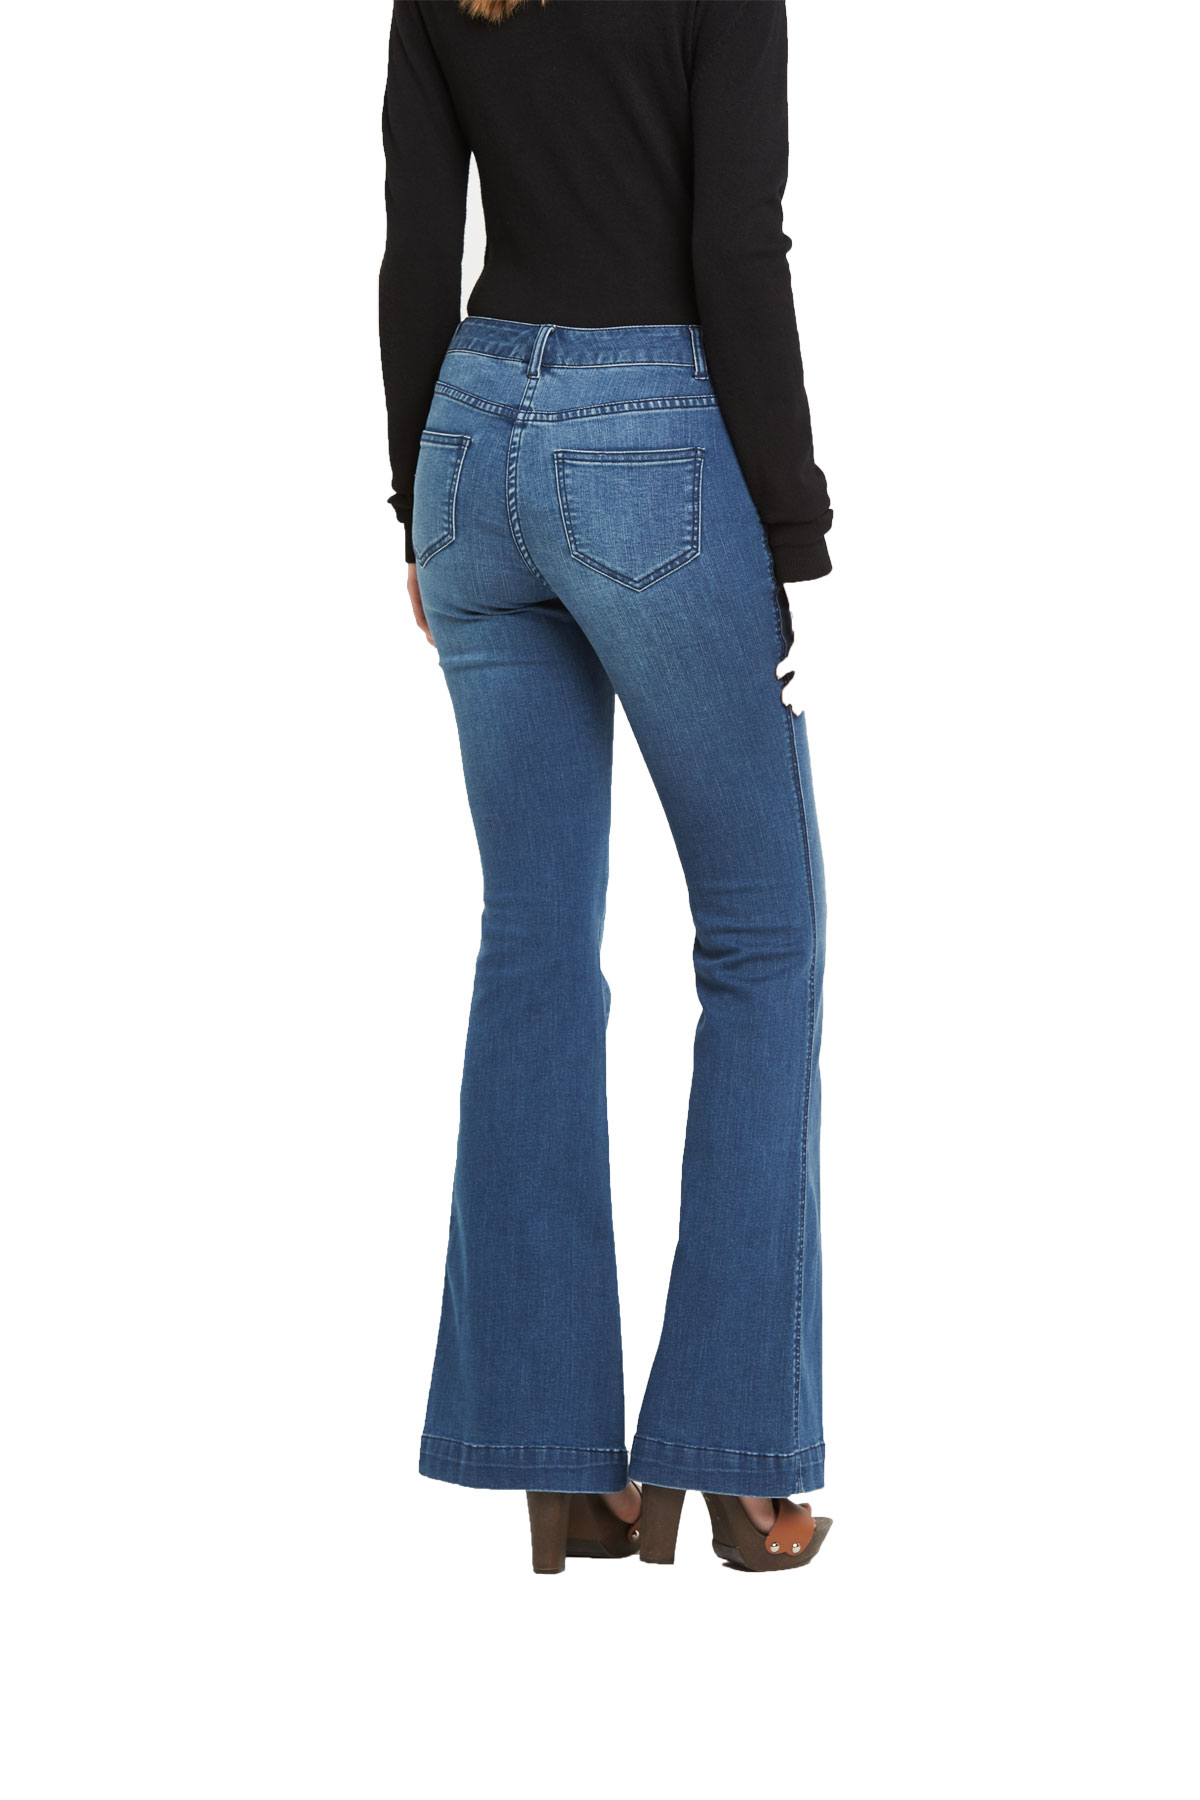 V By Very Welt Pocket Kickflare Jeans